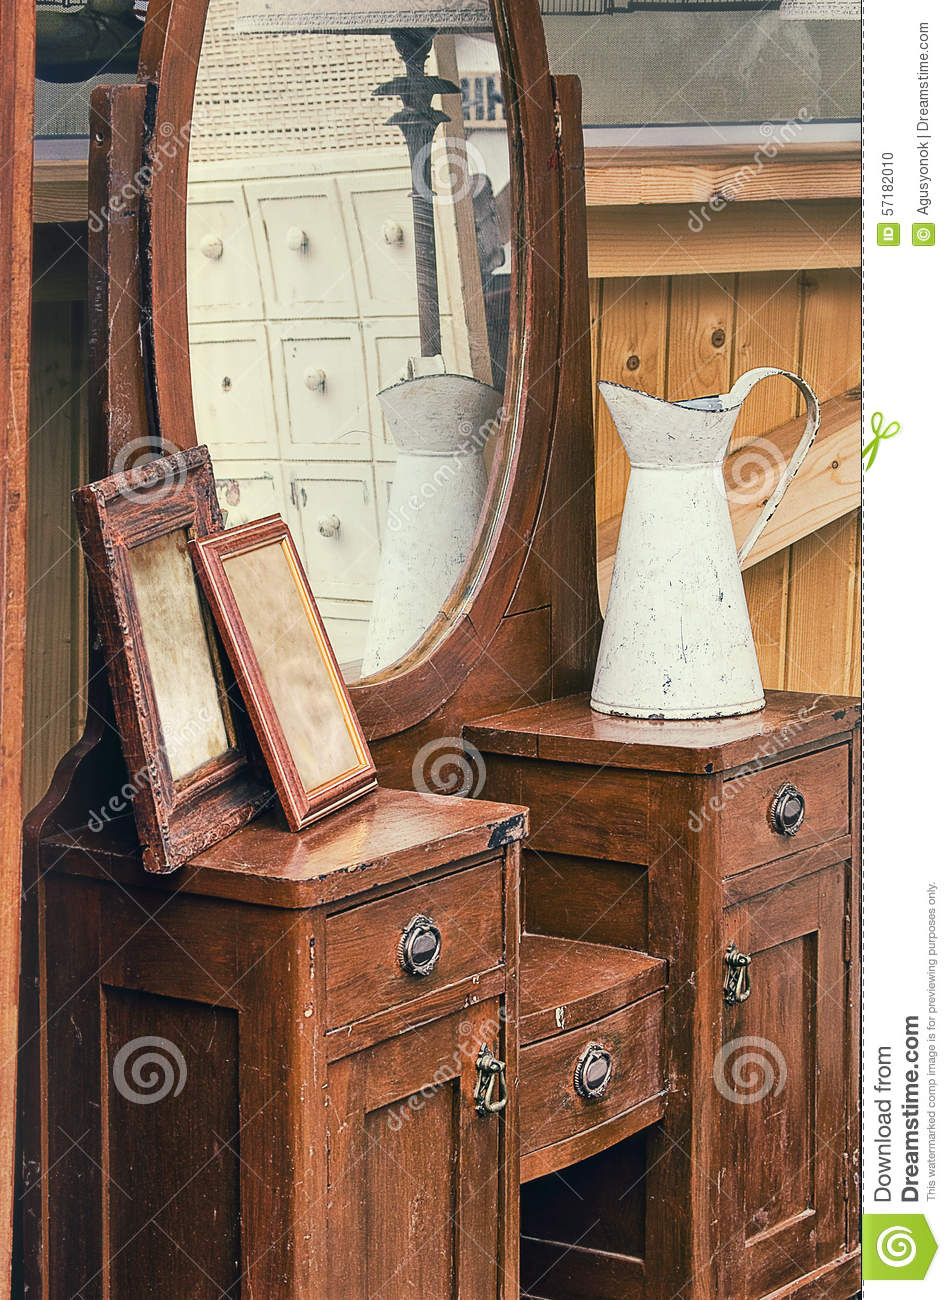 Old retro objects antique dressing table with mirror, framed photographs  and jug - Old Retro Objects Antique Dressing Table With Mirror, Framed